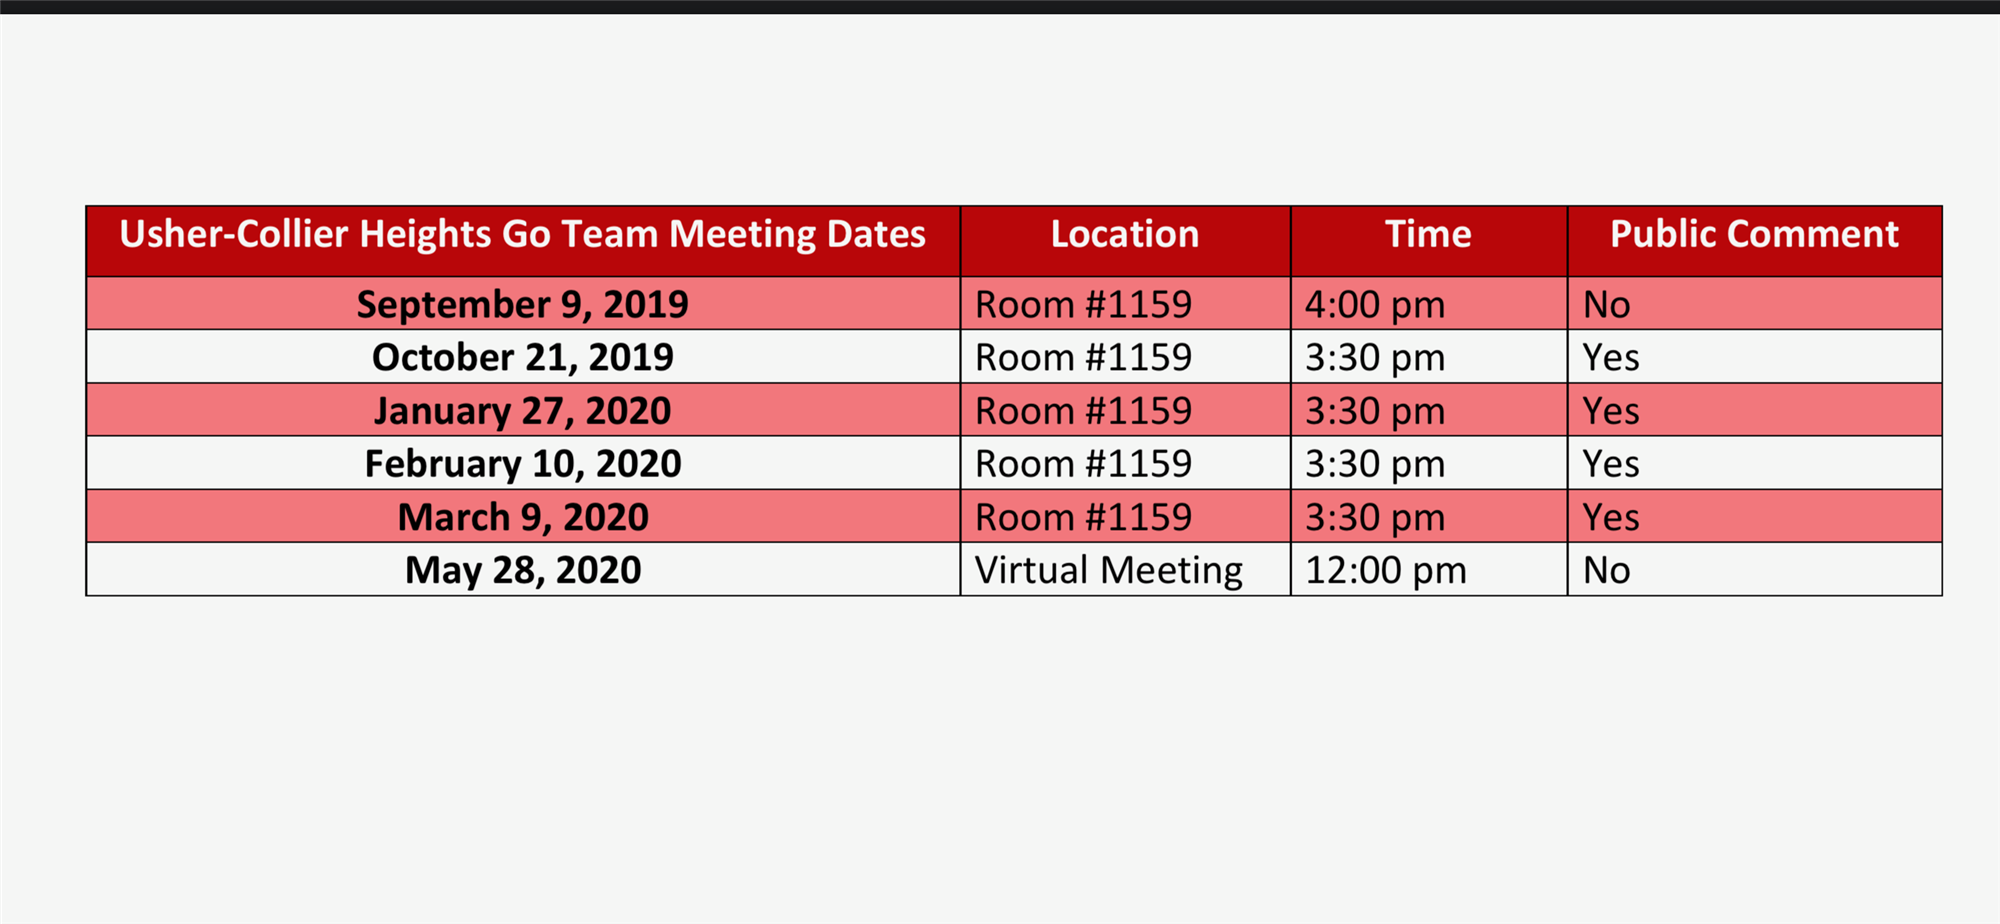 Usher-Collier Go Team Meeting Dates